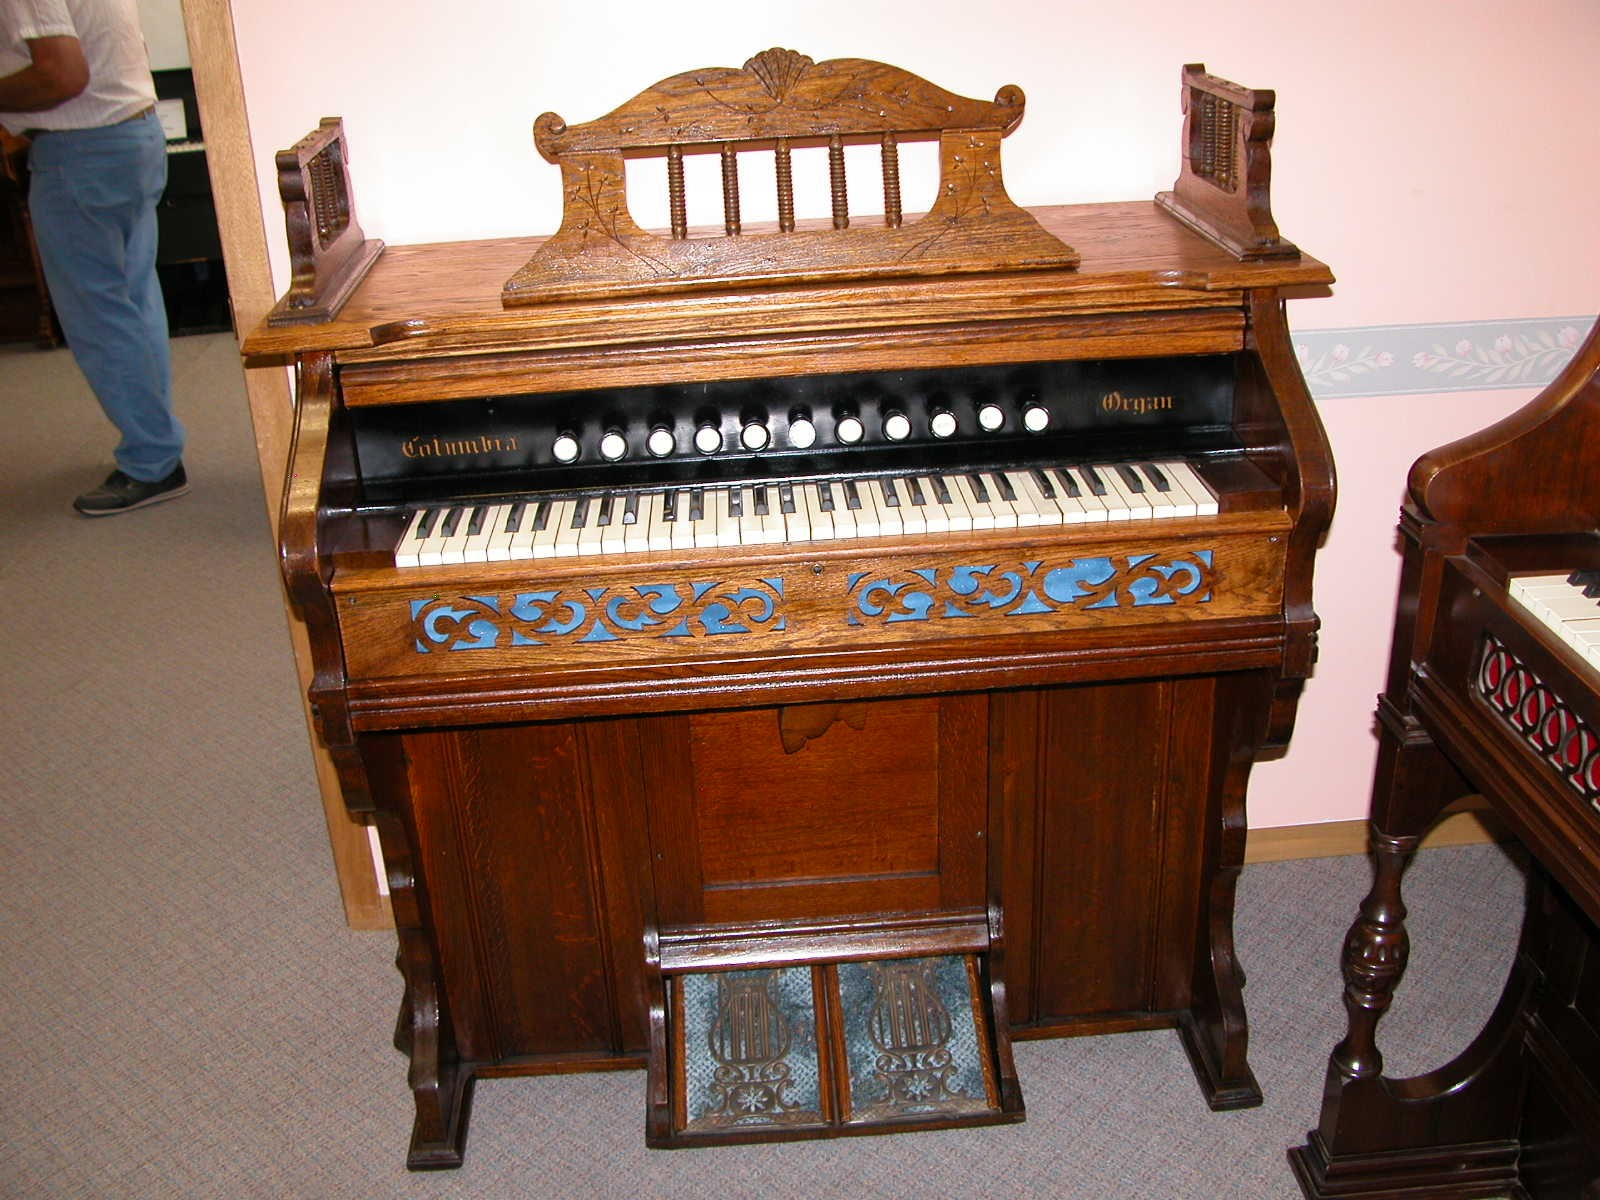 1903 Columbia Organ Co. I.D. No. #33